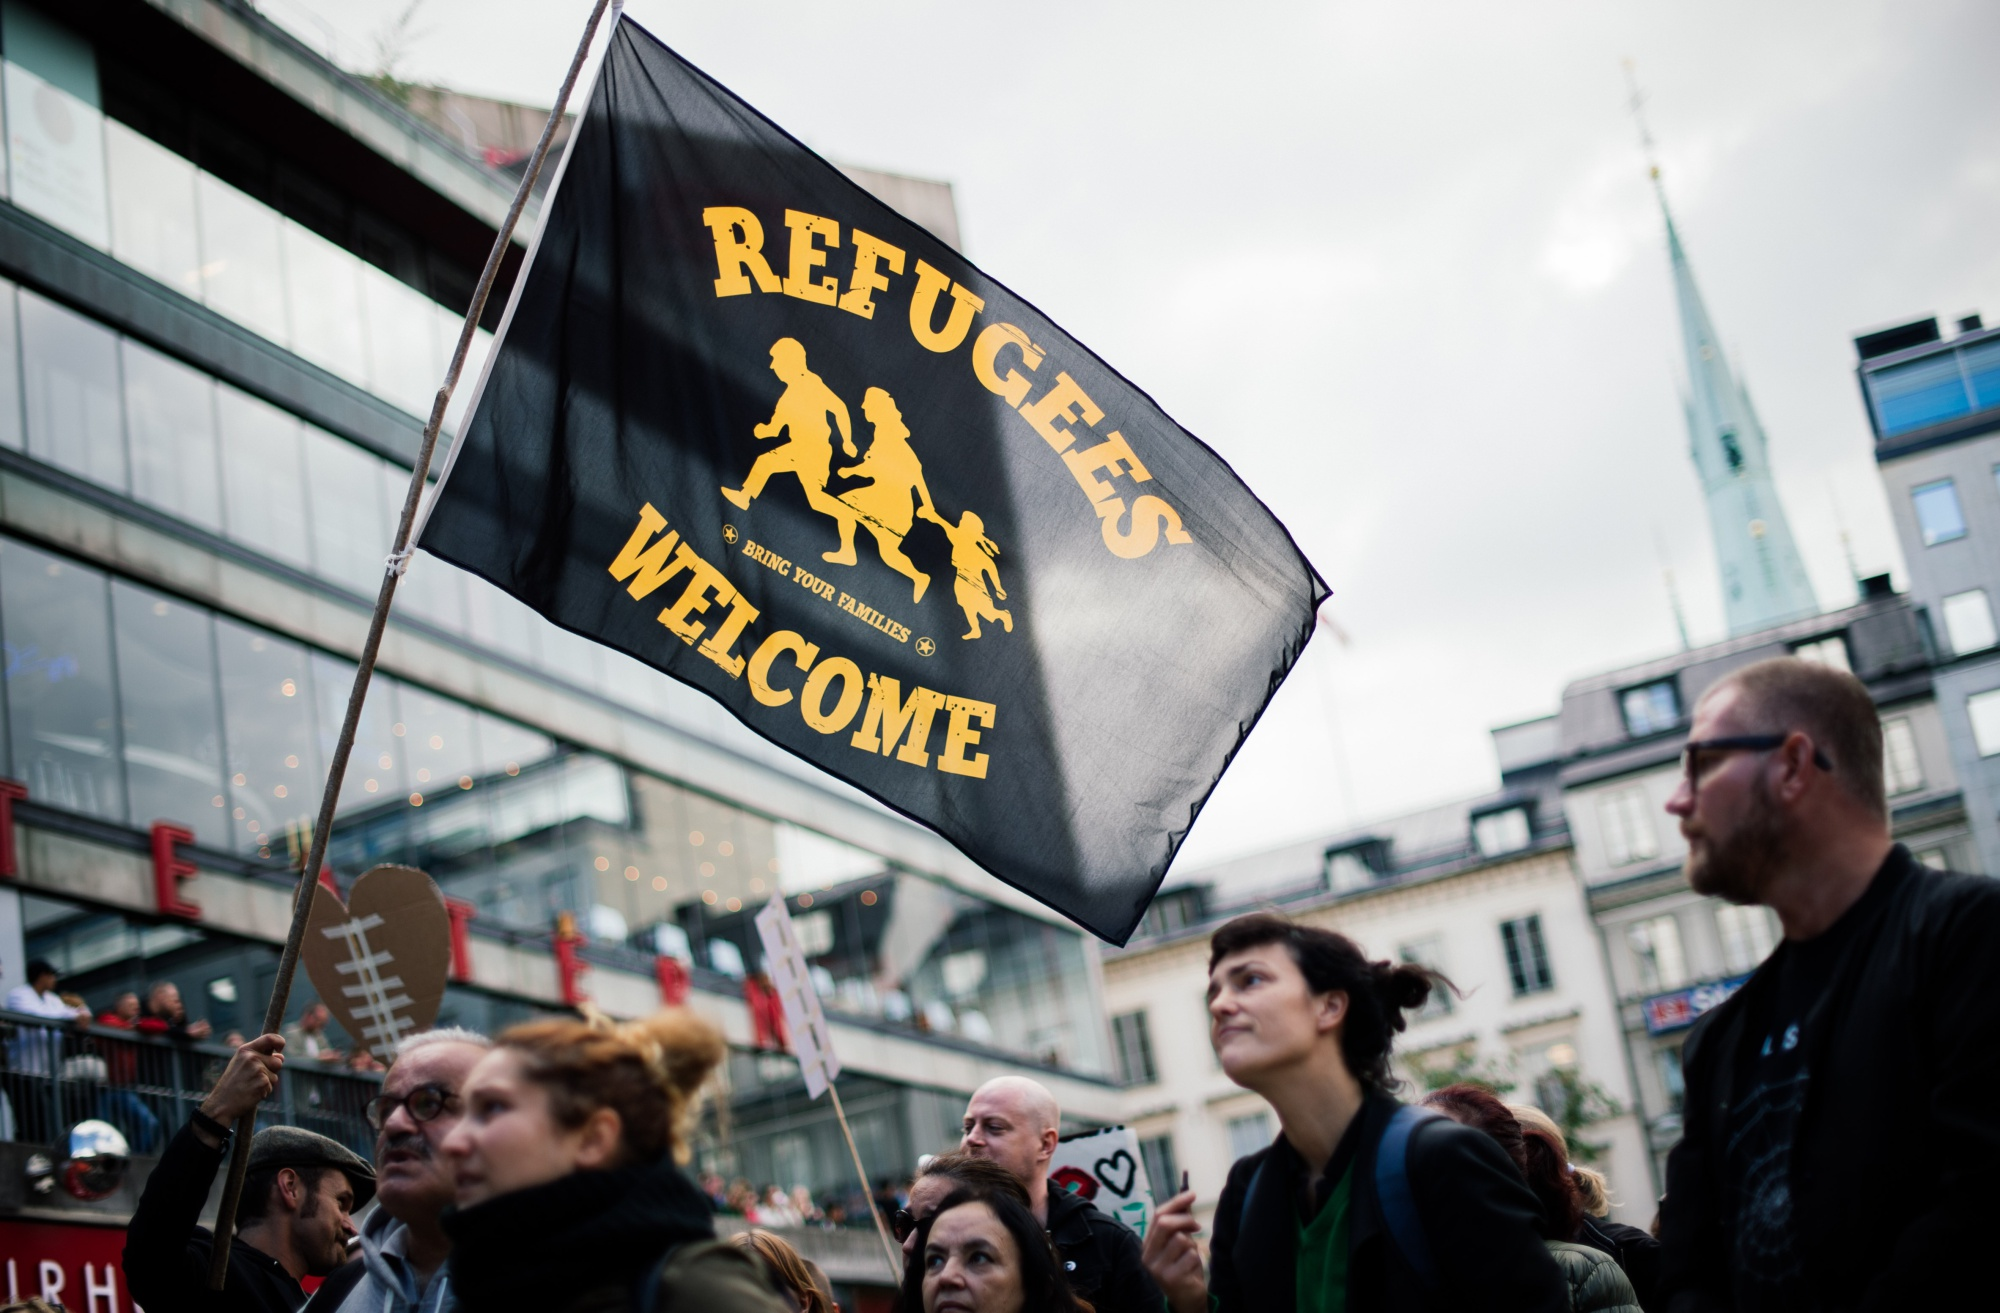 Sweden's Anti-Immigration Wave Is Based on a Failure to